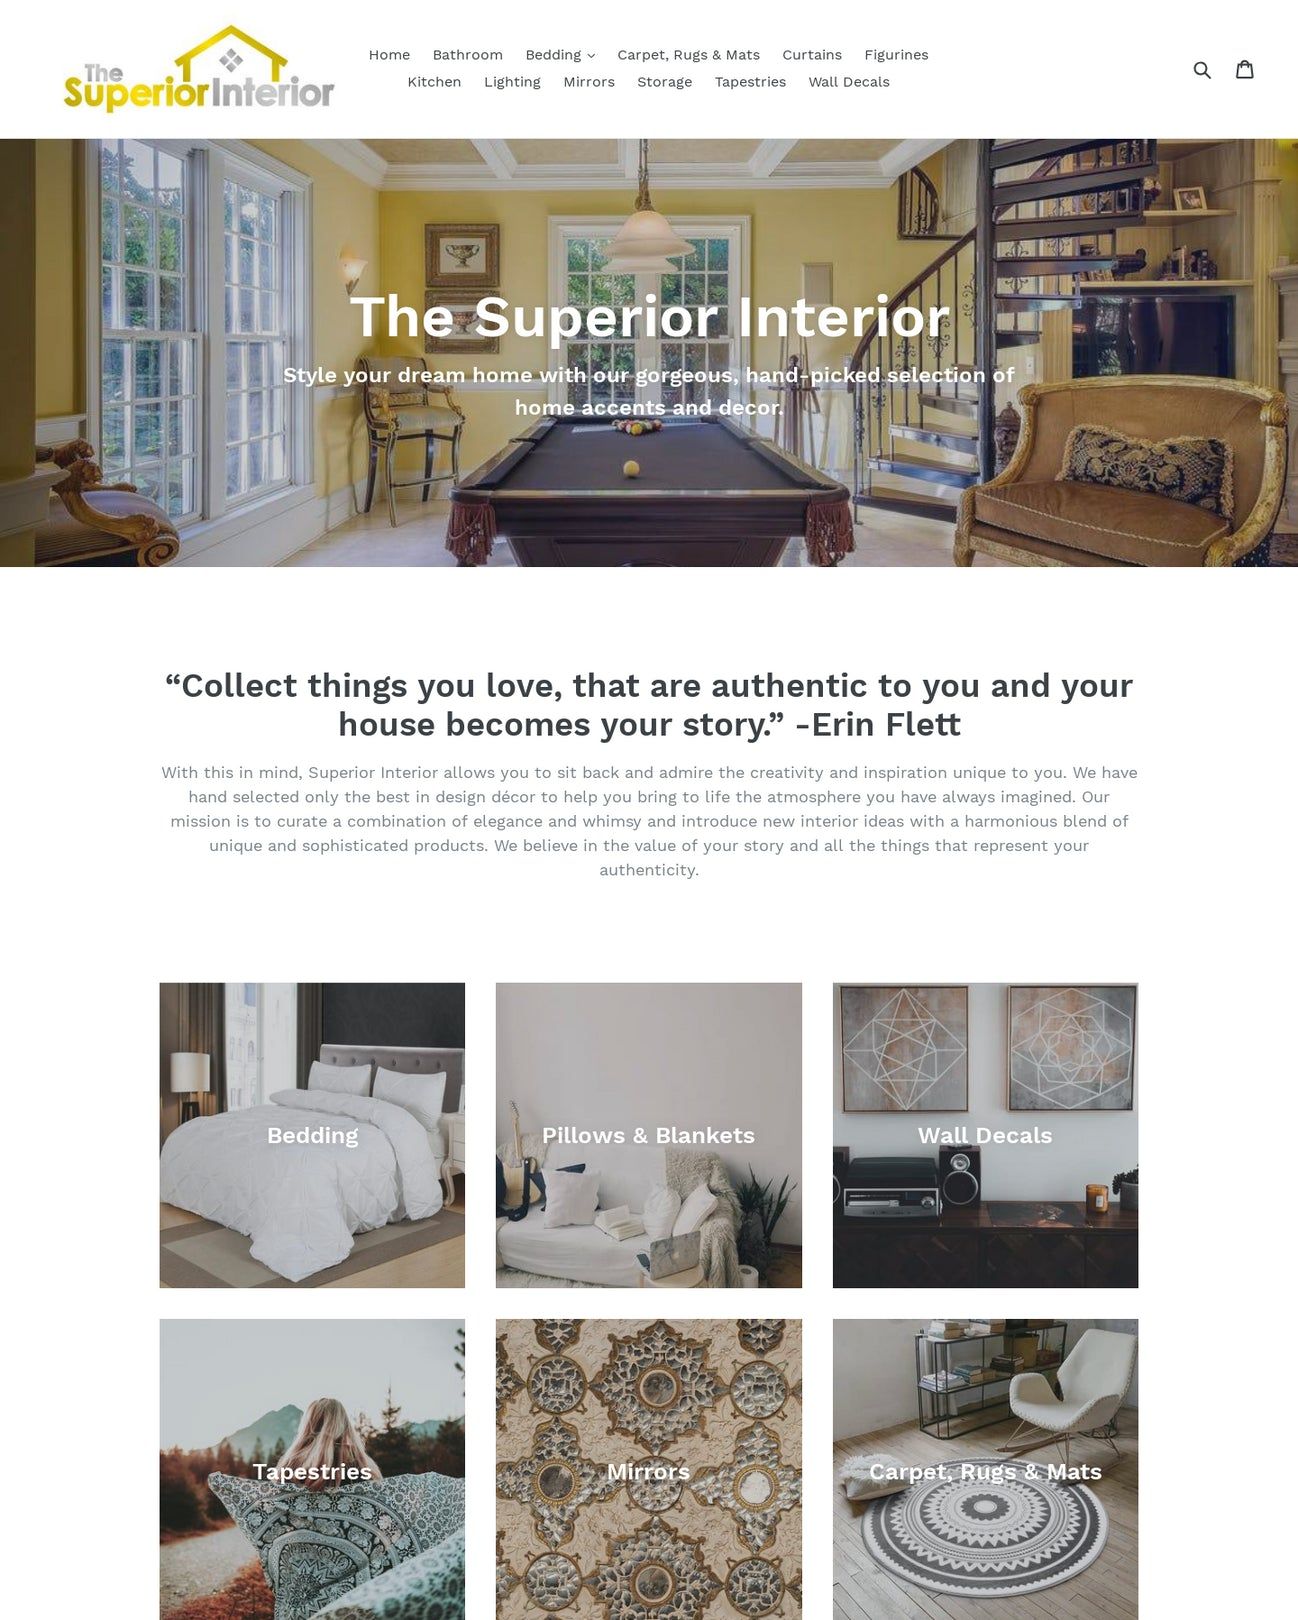 Thesuperiorinterior Sold Store Home And Furniture Business